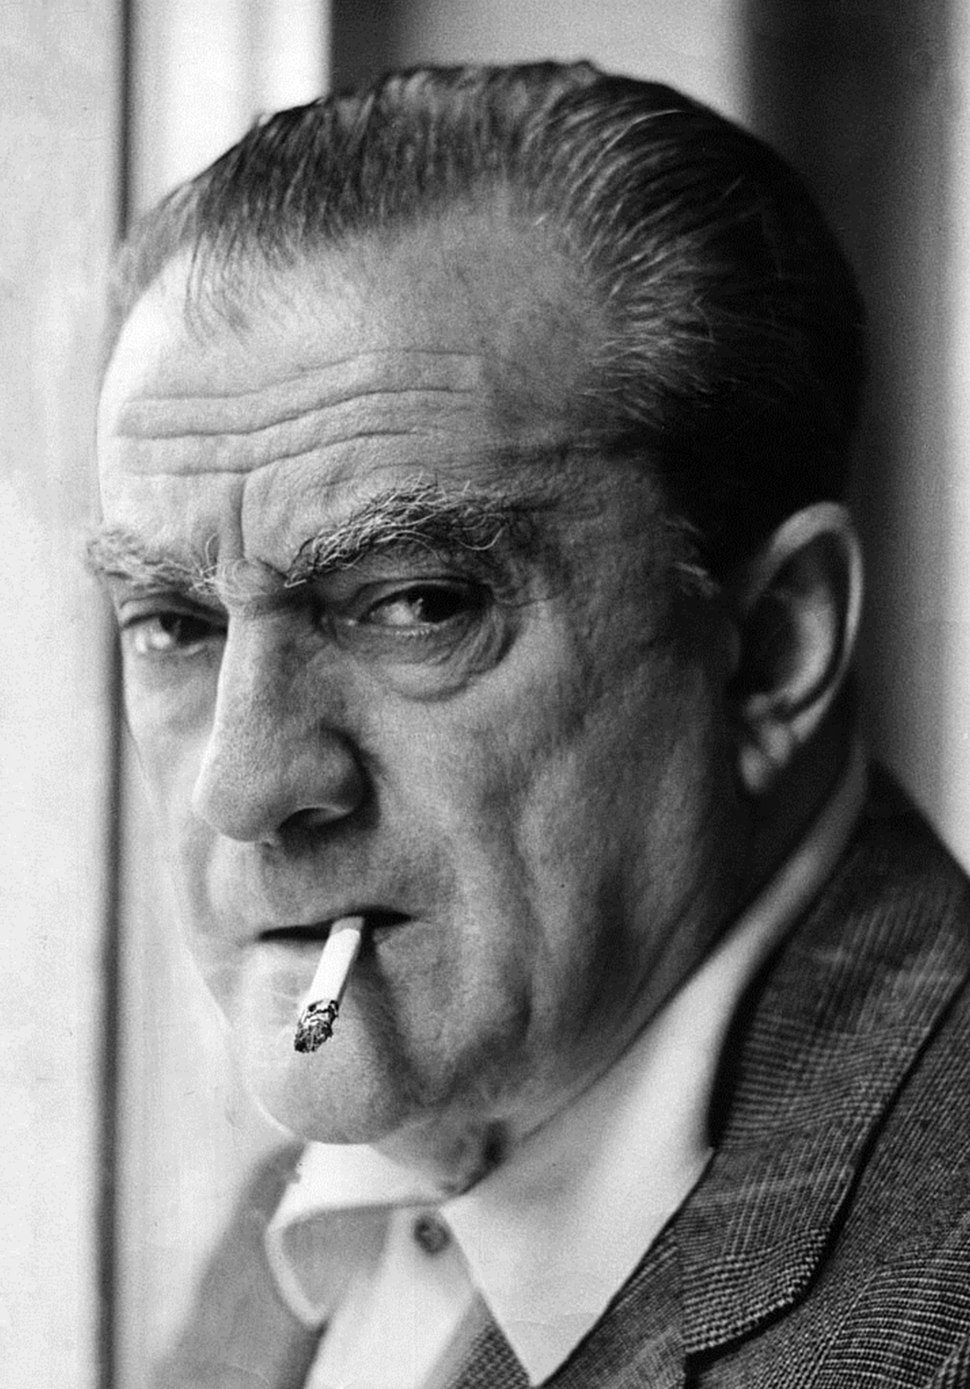 Luchino Visconti 1972